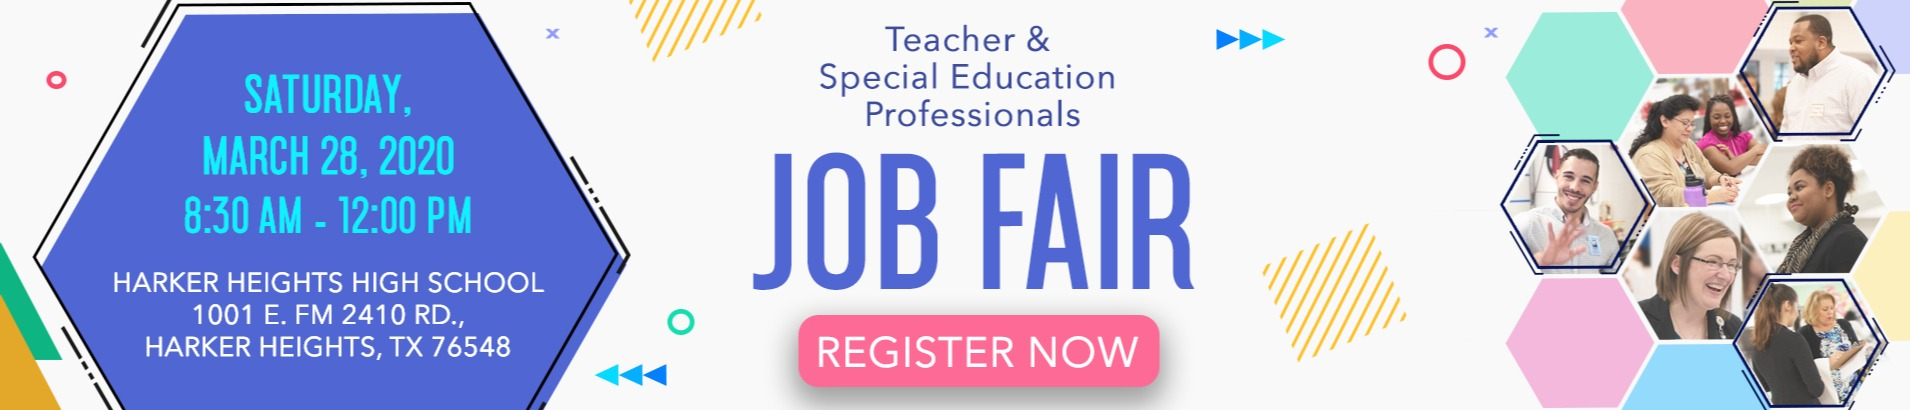 Job Fair Web Banner: text reads: Teacher & Special Education Job Fair March 28, 2020 8:30 am to 12:00 pm, at Harker Heights High School.